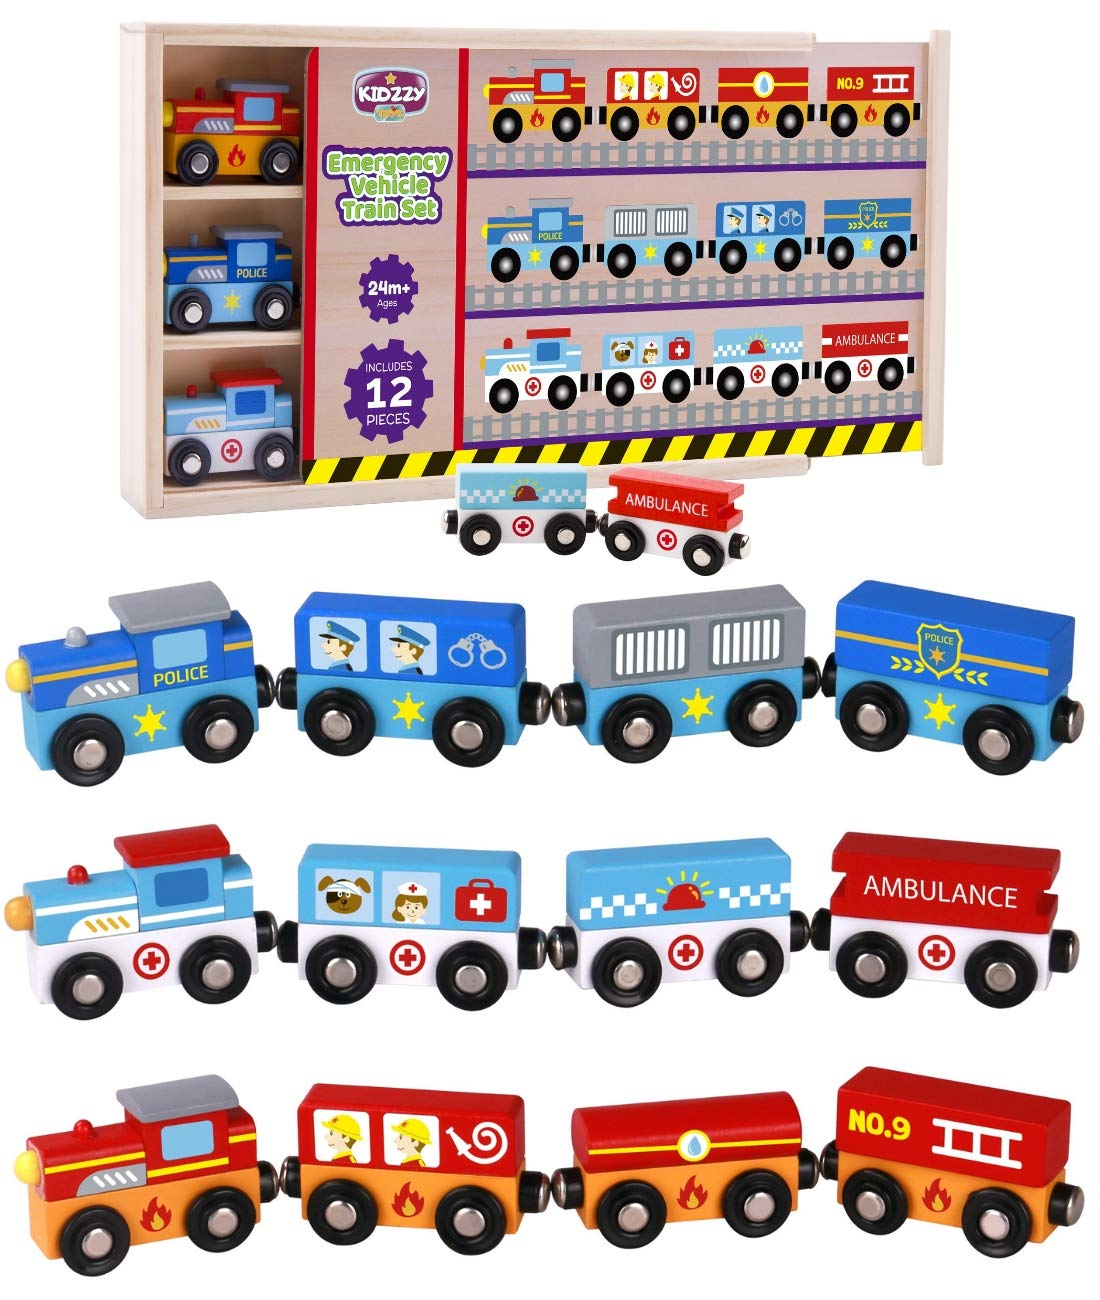 Top 9 Best Train Sets for Toddlers Reviews in 2021 18